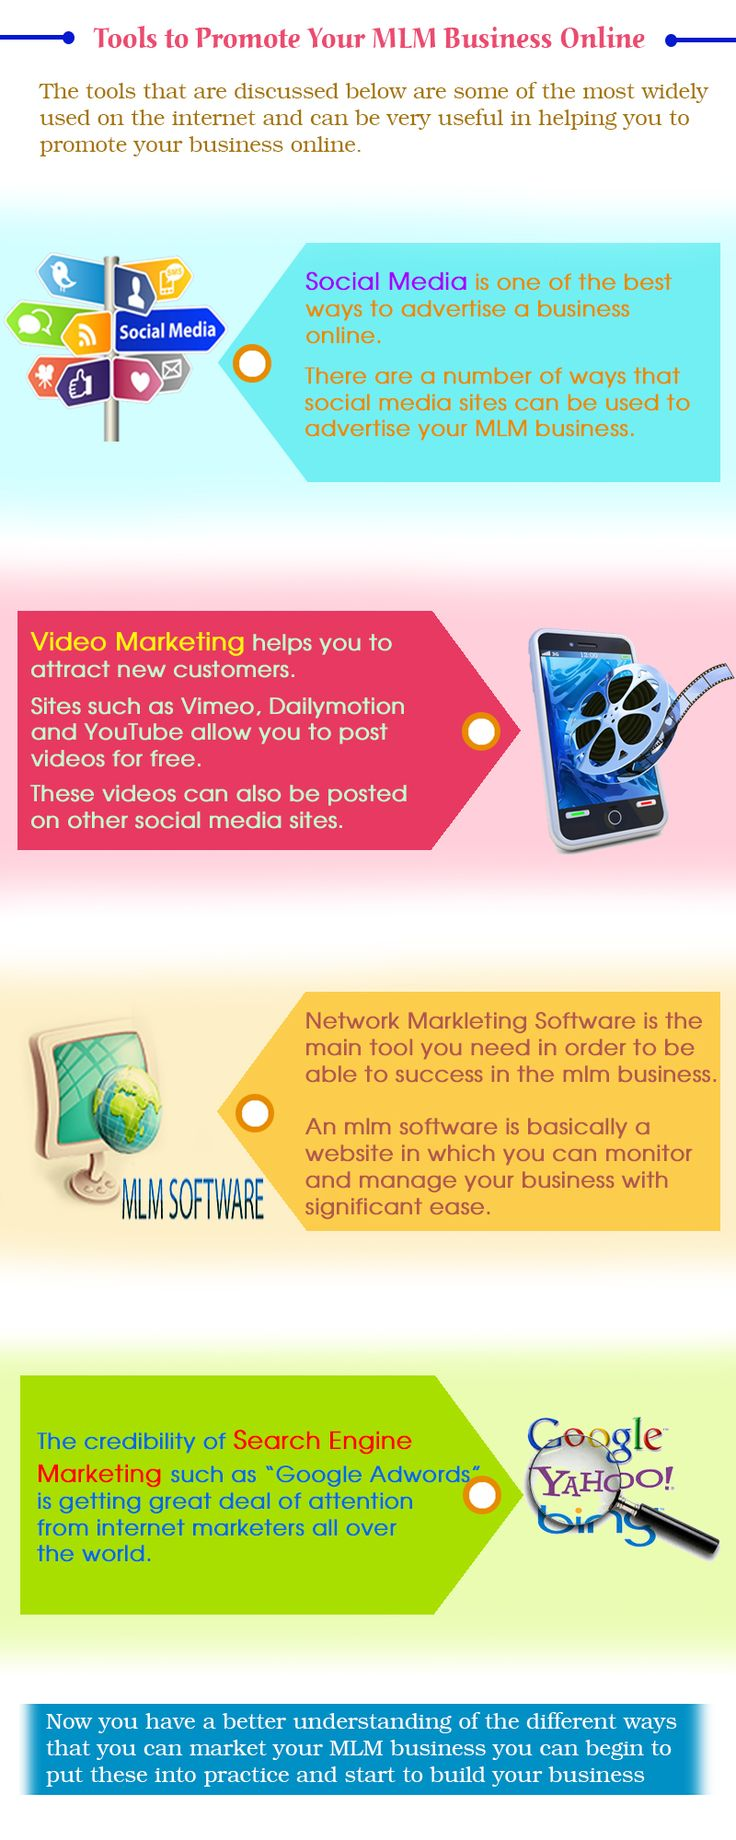 If you are in the multi level marketing business, then you must need the above mentioned tools in order to be successful in network marketing business. So make use of the above tools and succeed in your mlm business